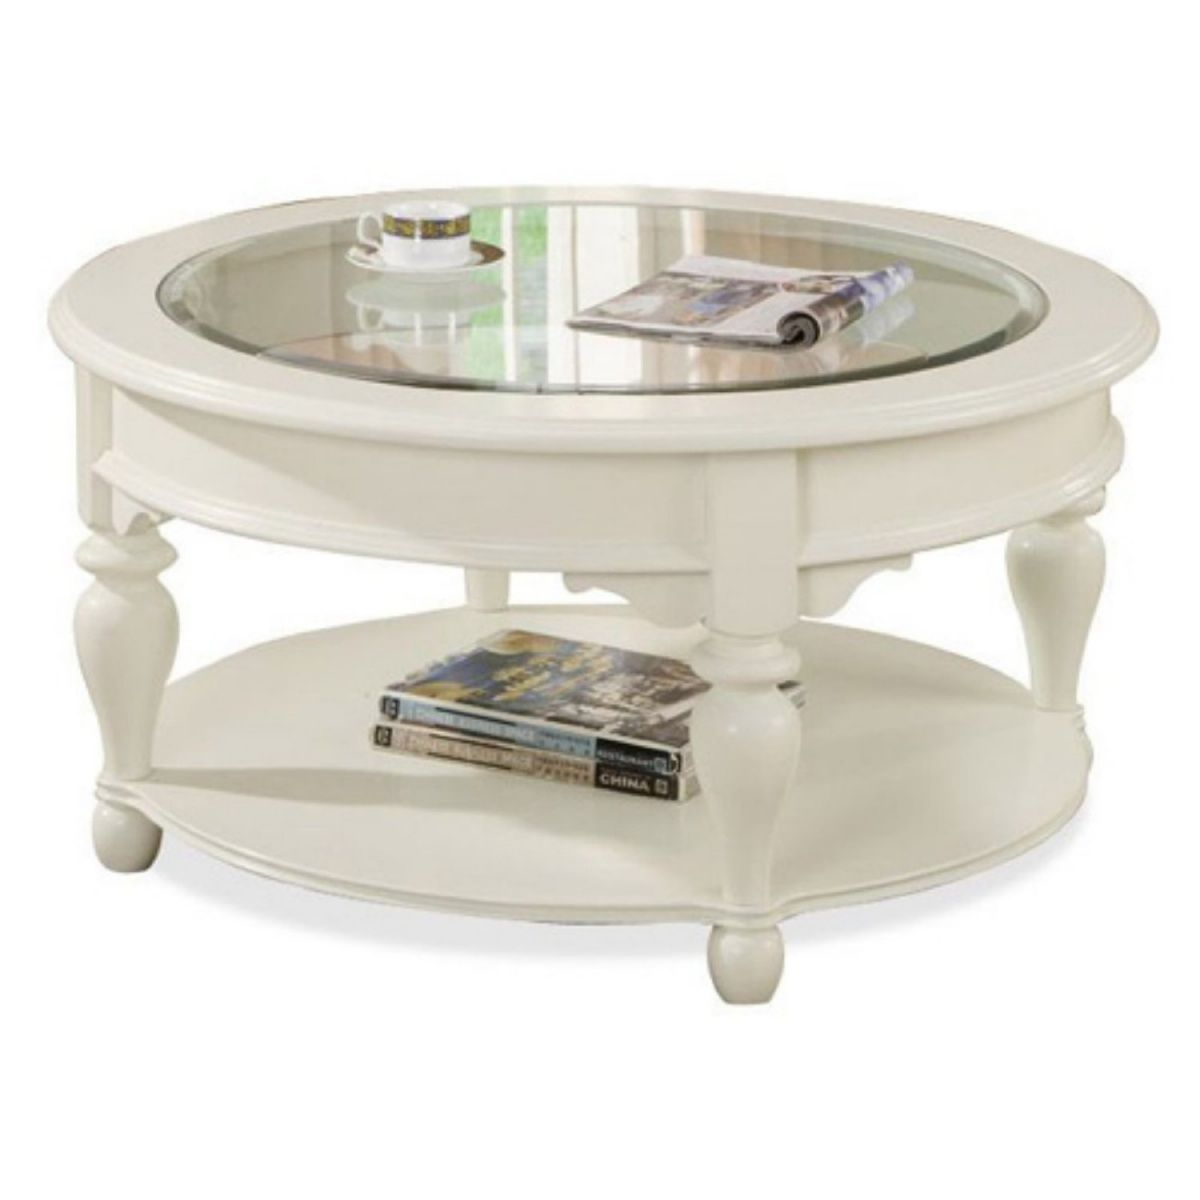 Illustration of The Round Coffee Tables with Storage the Simple